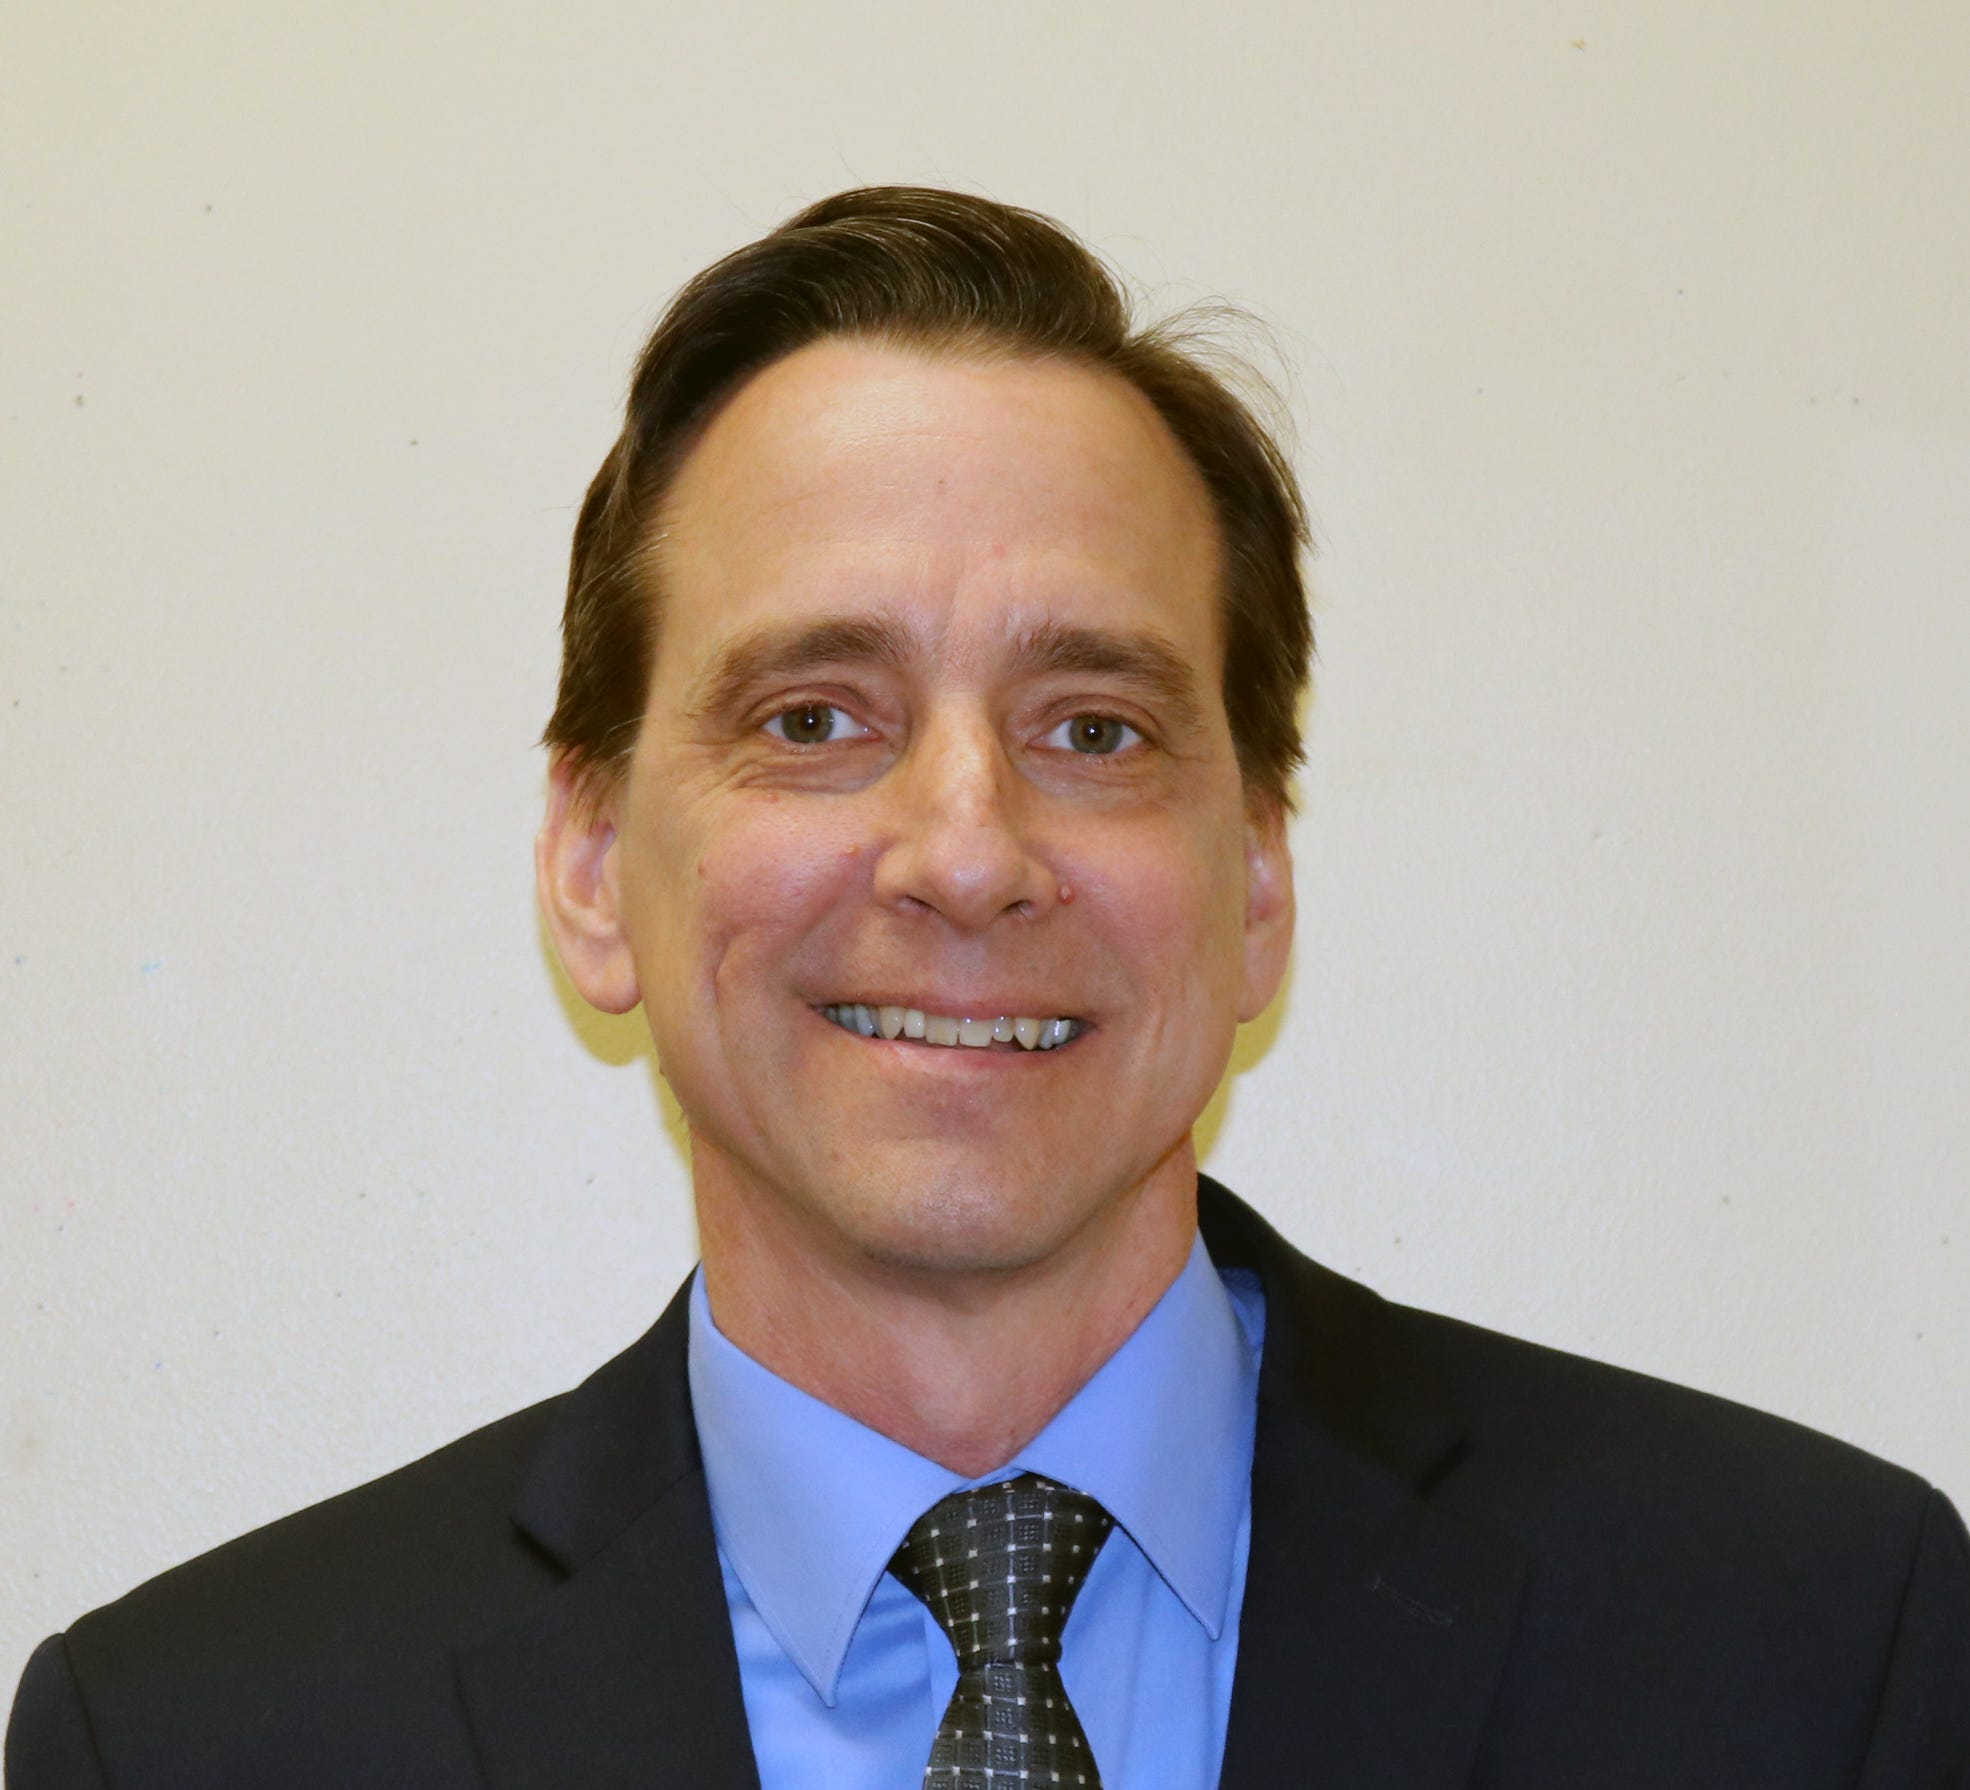 Shawn Woodward is a candidate for the position of South Kitsap School District superintendent. The school board announced three finalists on Feb. 25, 2019.